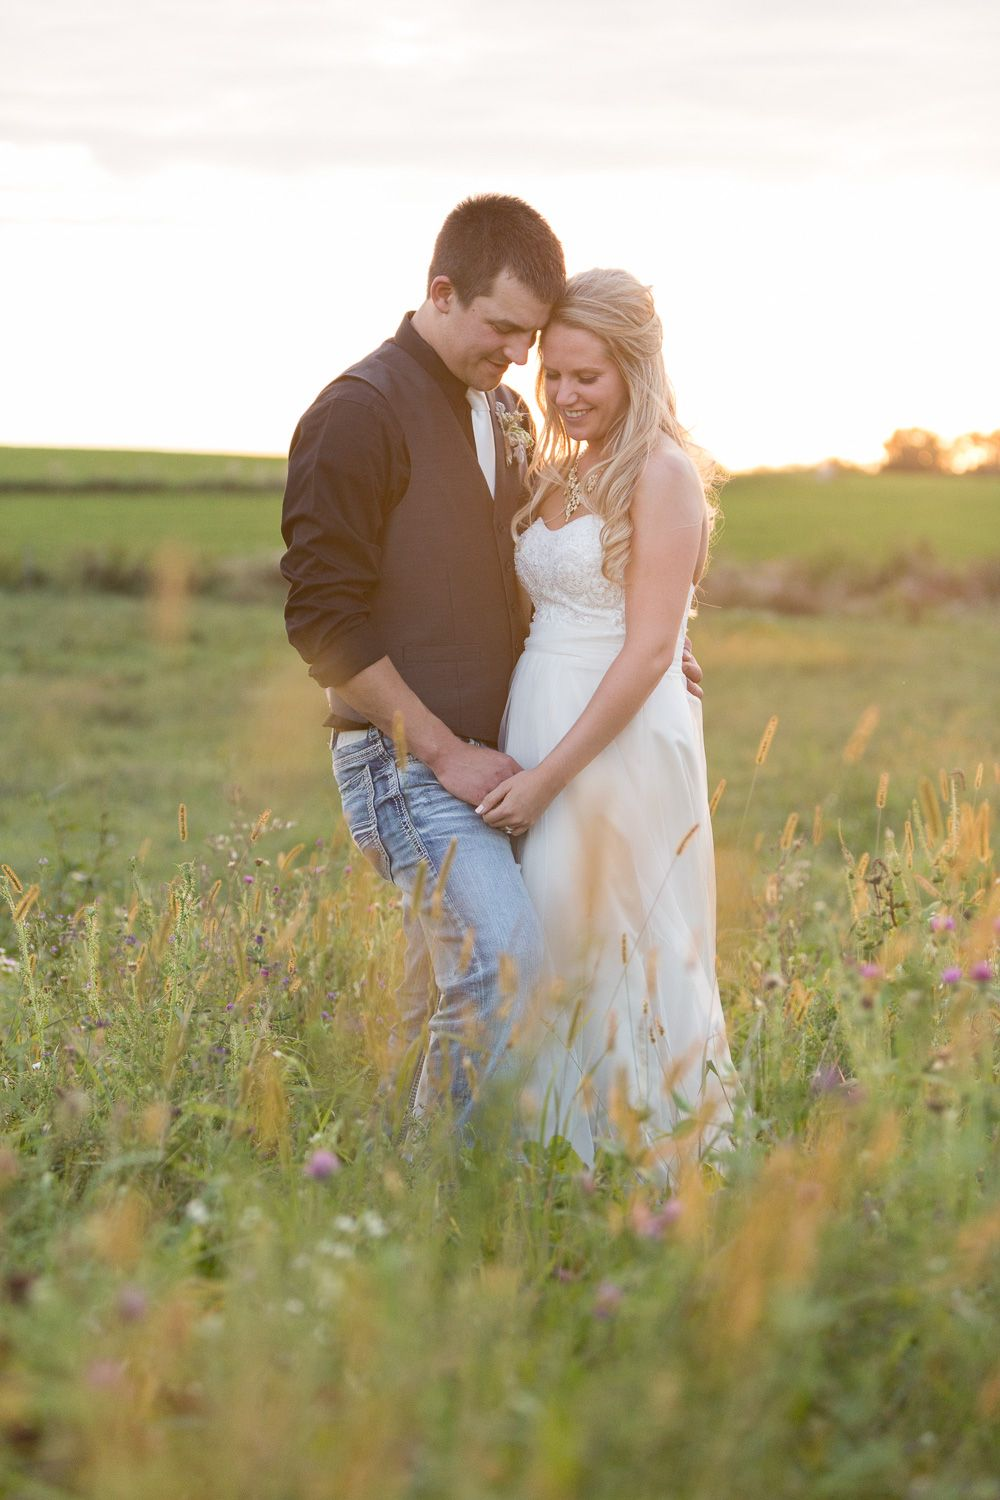 Photography Bride And Groom Photos Professional Wedding Photographer Golden Hour Photography